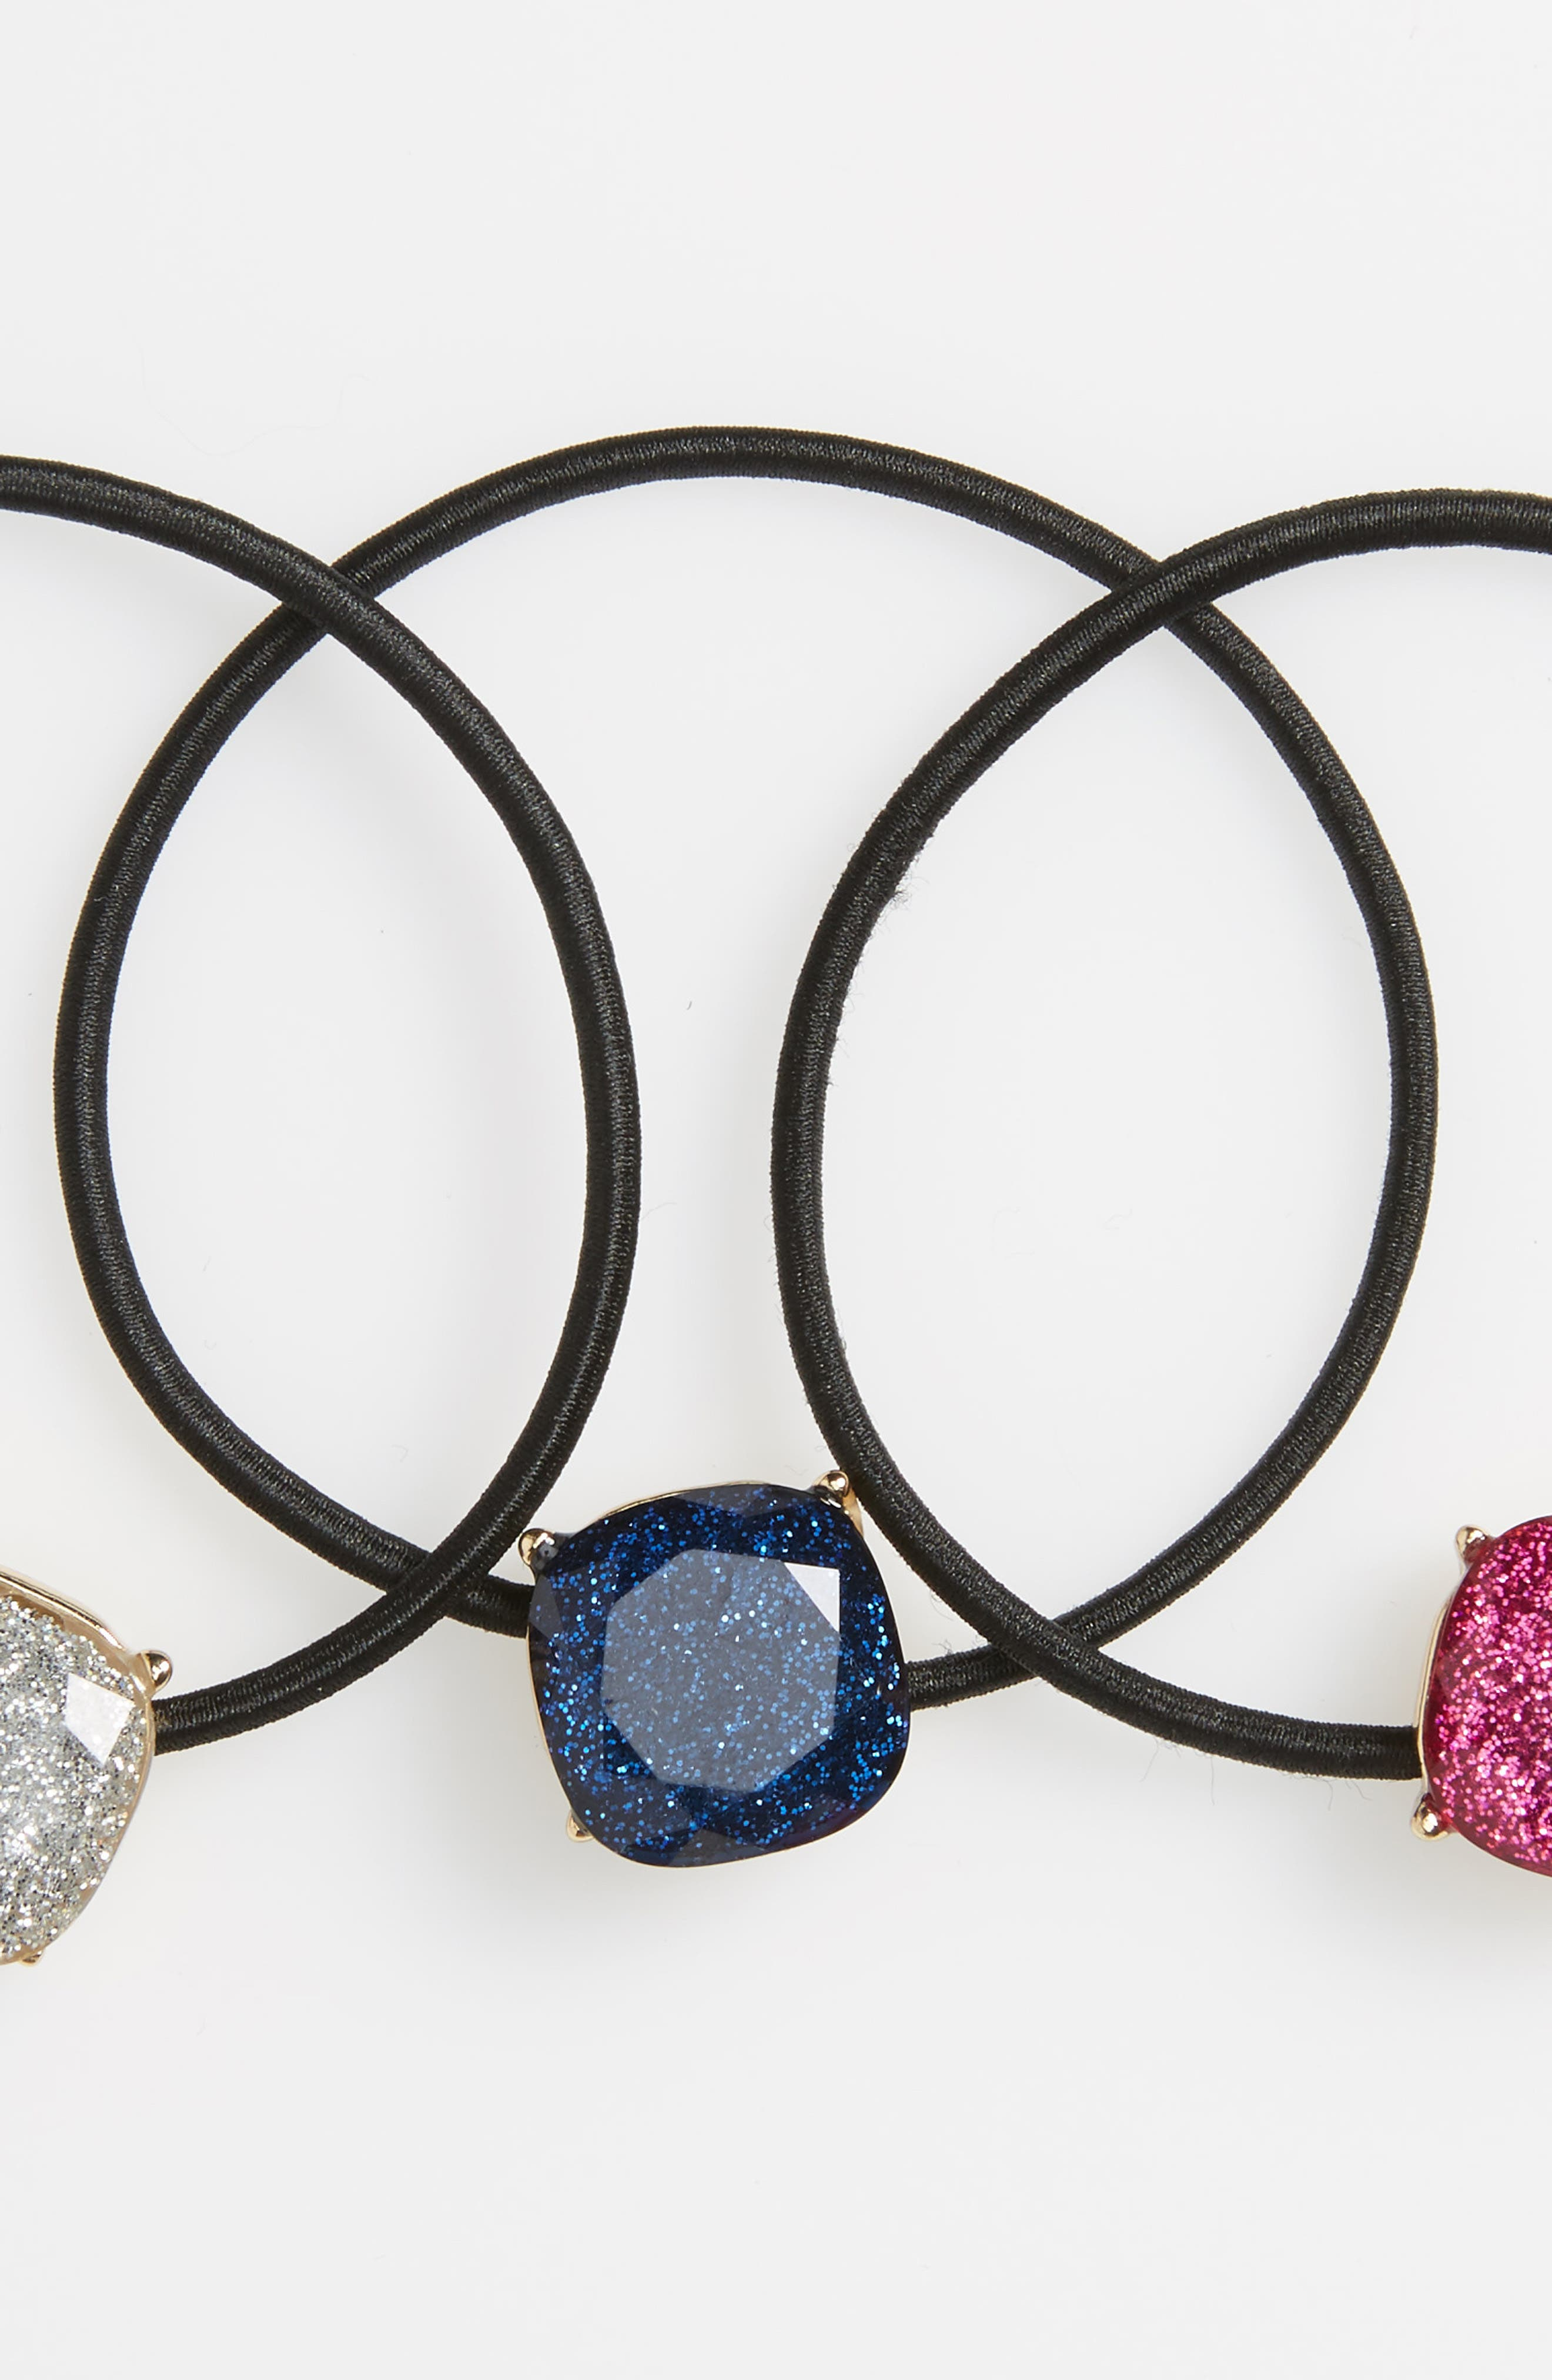 Set of 3 Glitter Charm Ponytail Holders,                             Alternate thumbnail 3, color,                             001